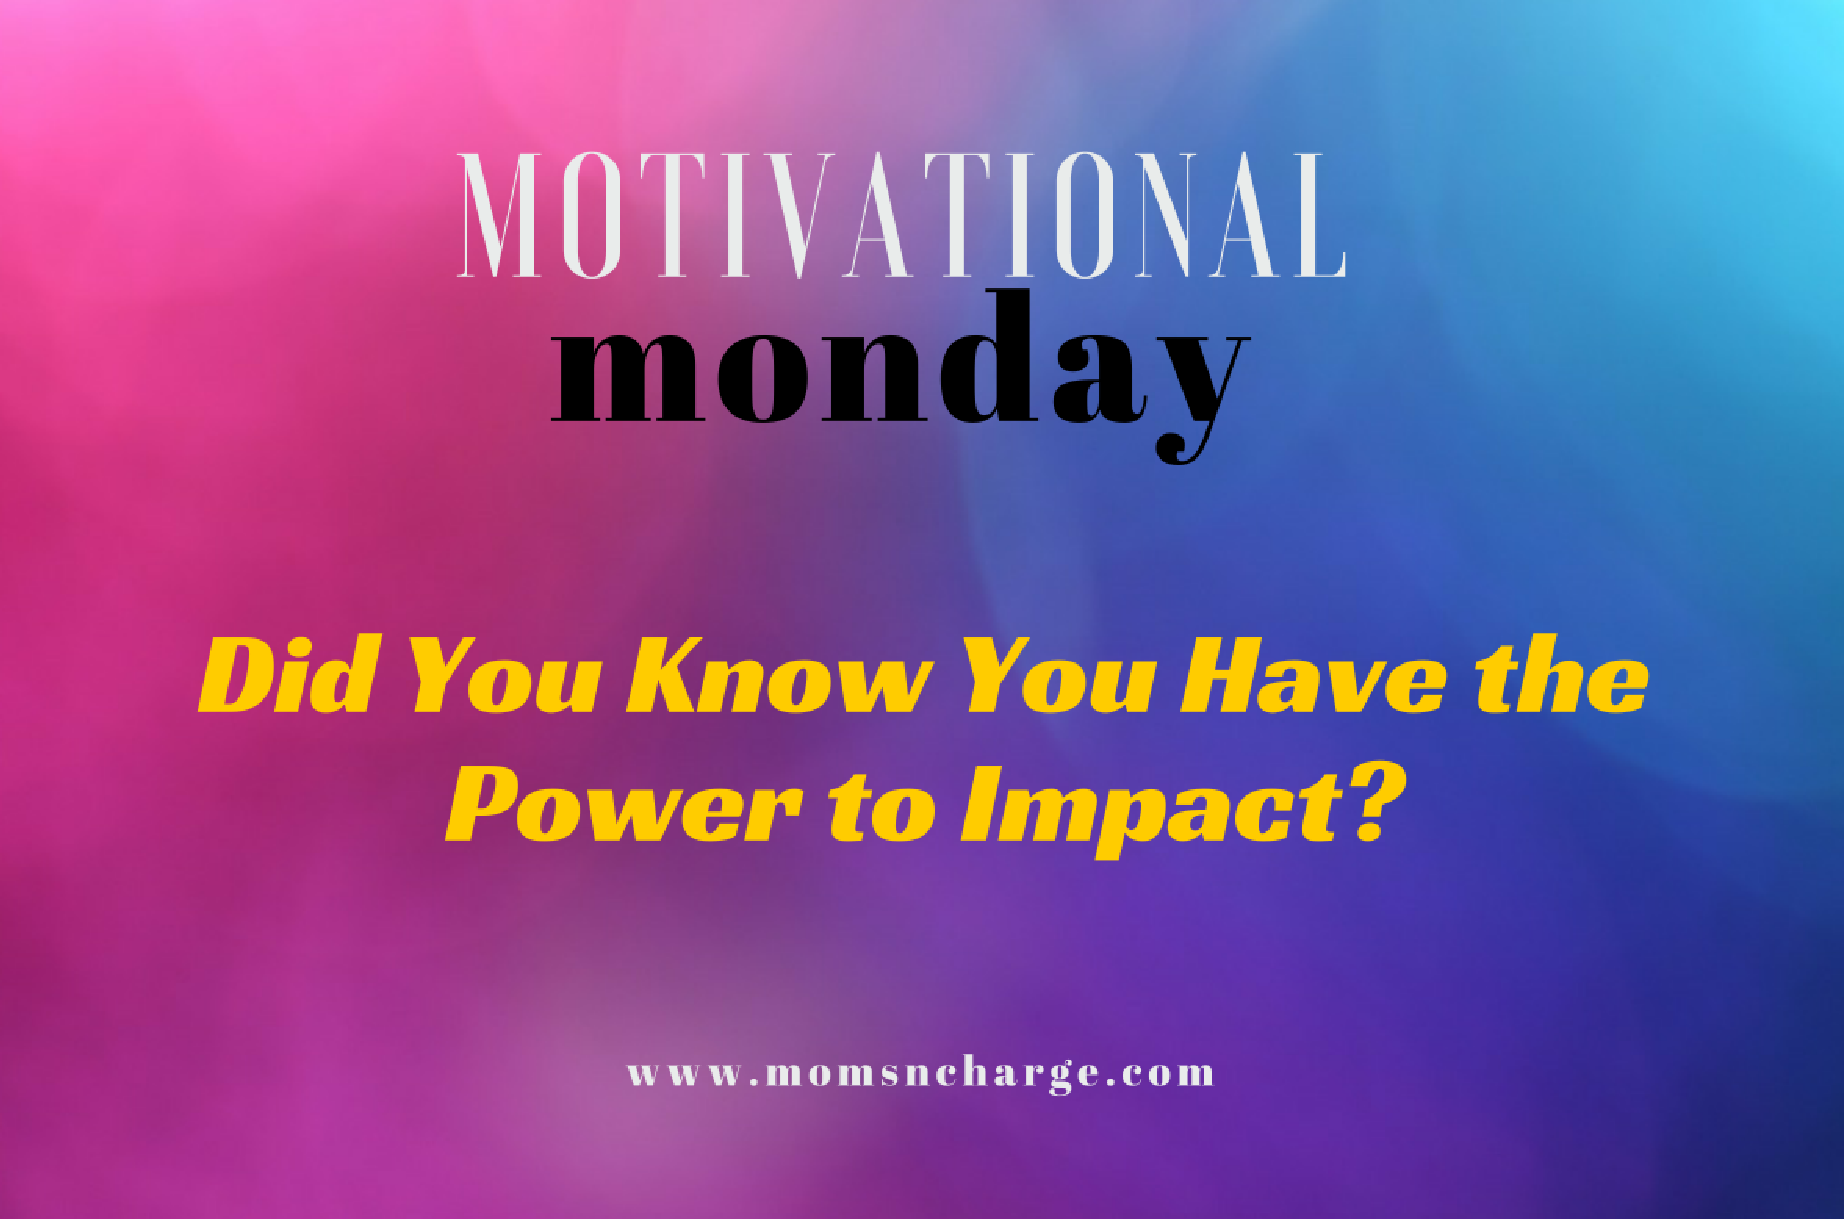 you have the power to impact